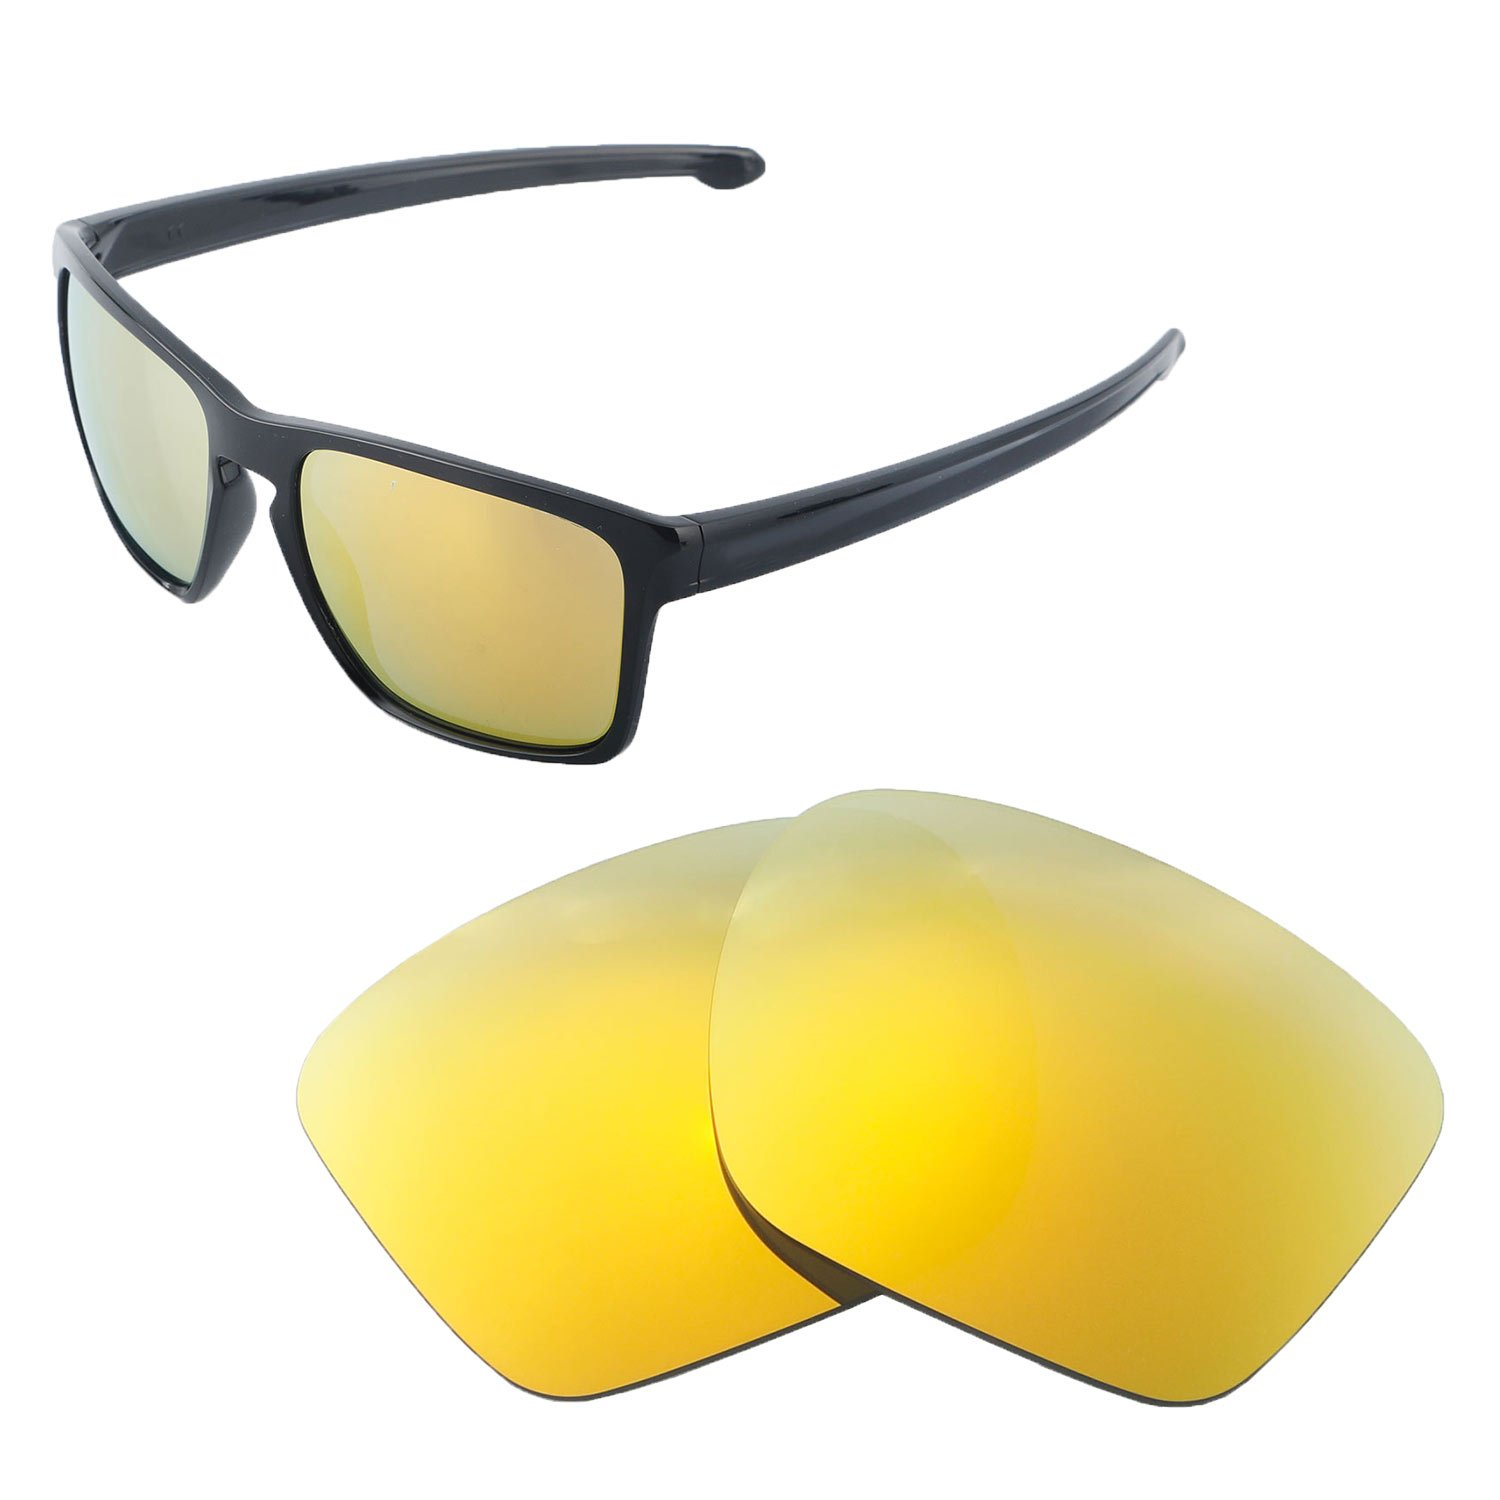 c3f3dc773b9 Amazon.com  Walleva Replacement Lenses for Oakley Sliver XL Sunglasses -  Multiple Options Available (24K Gold - Polarized)  Clothing